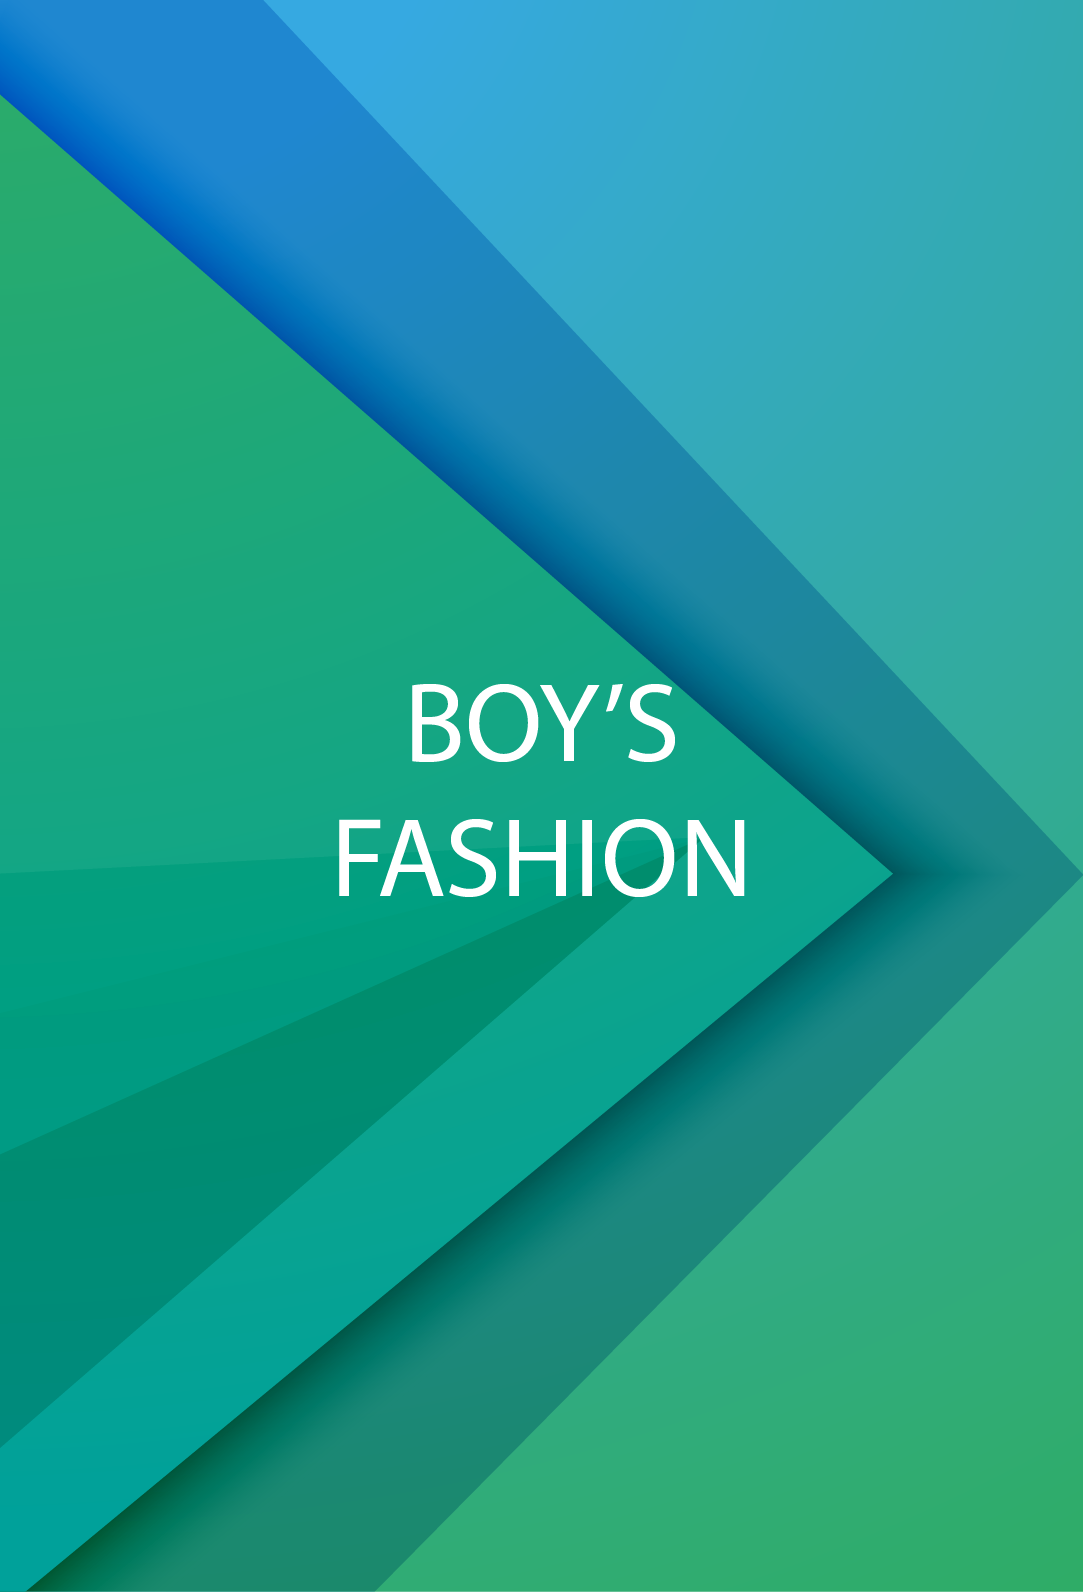 BoysFashion